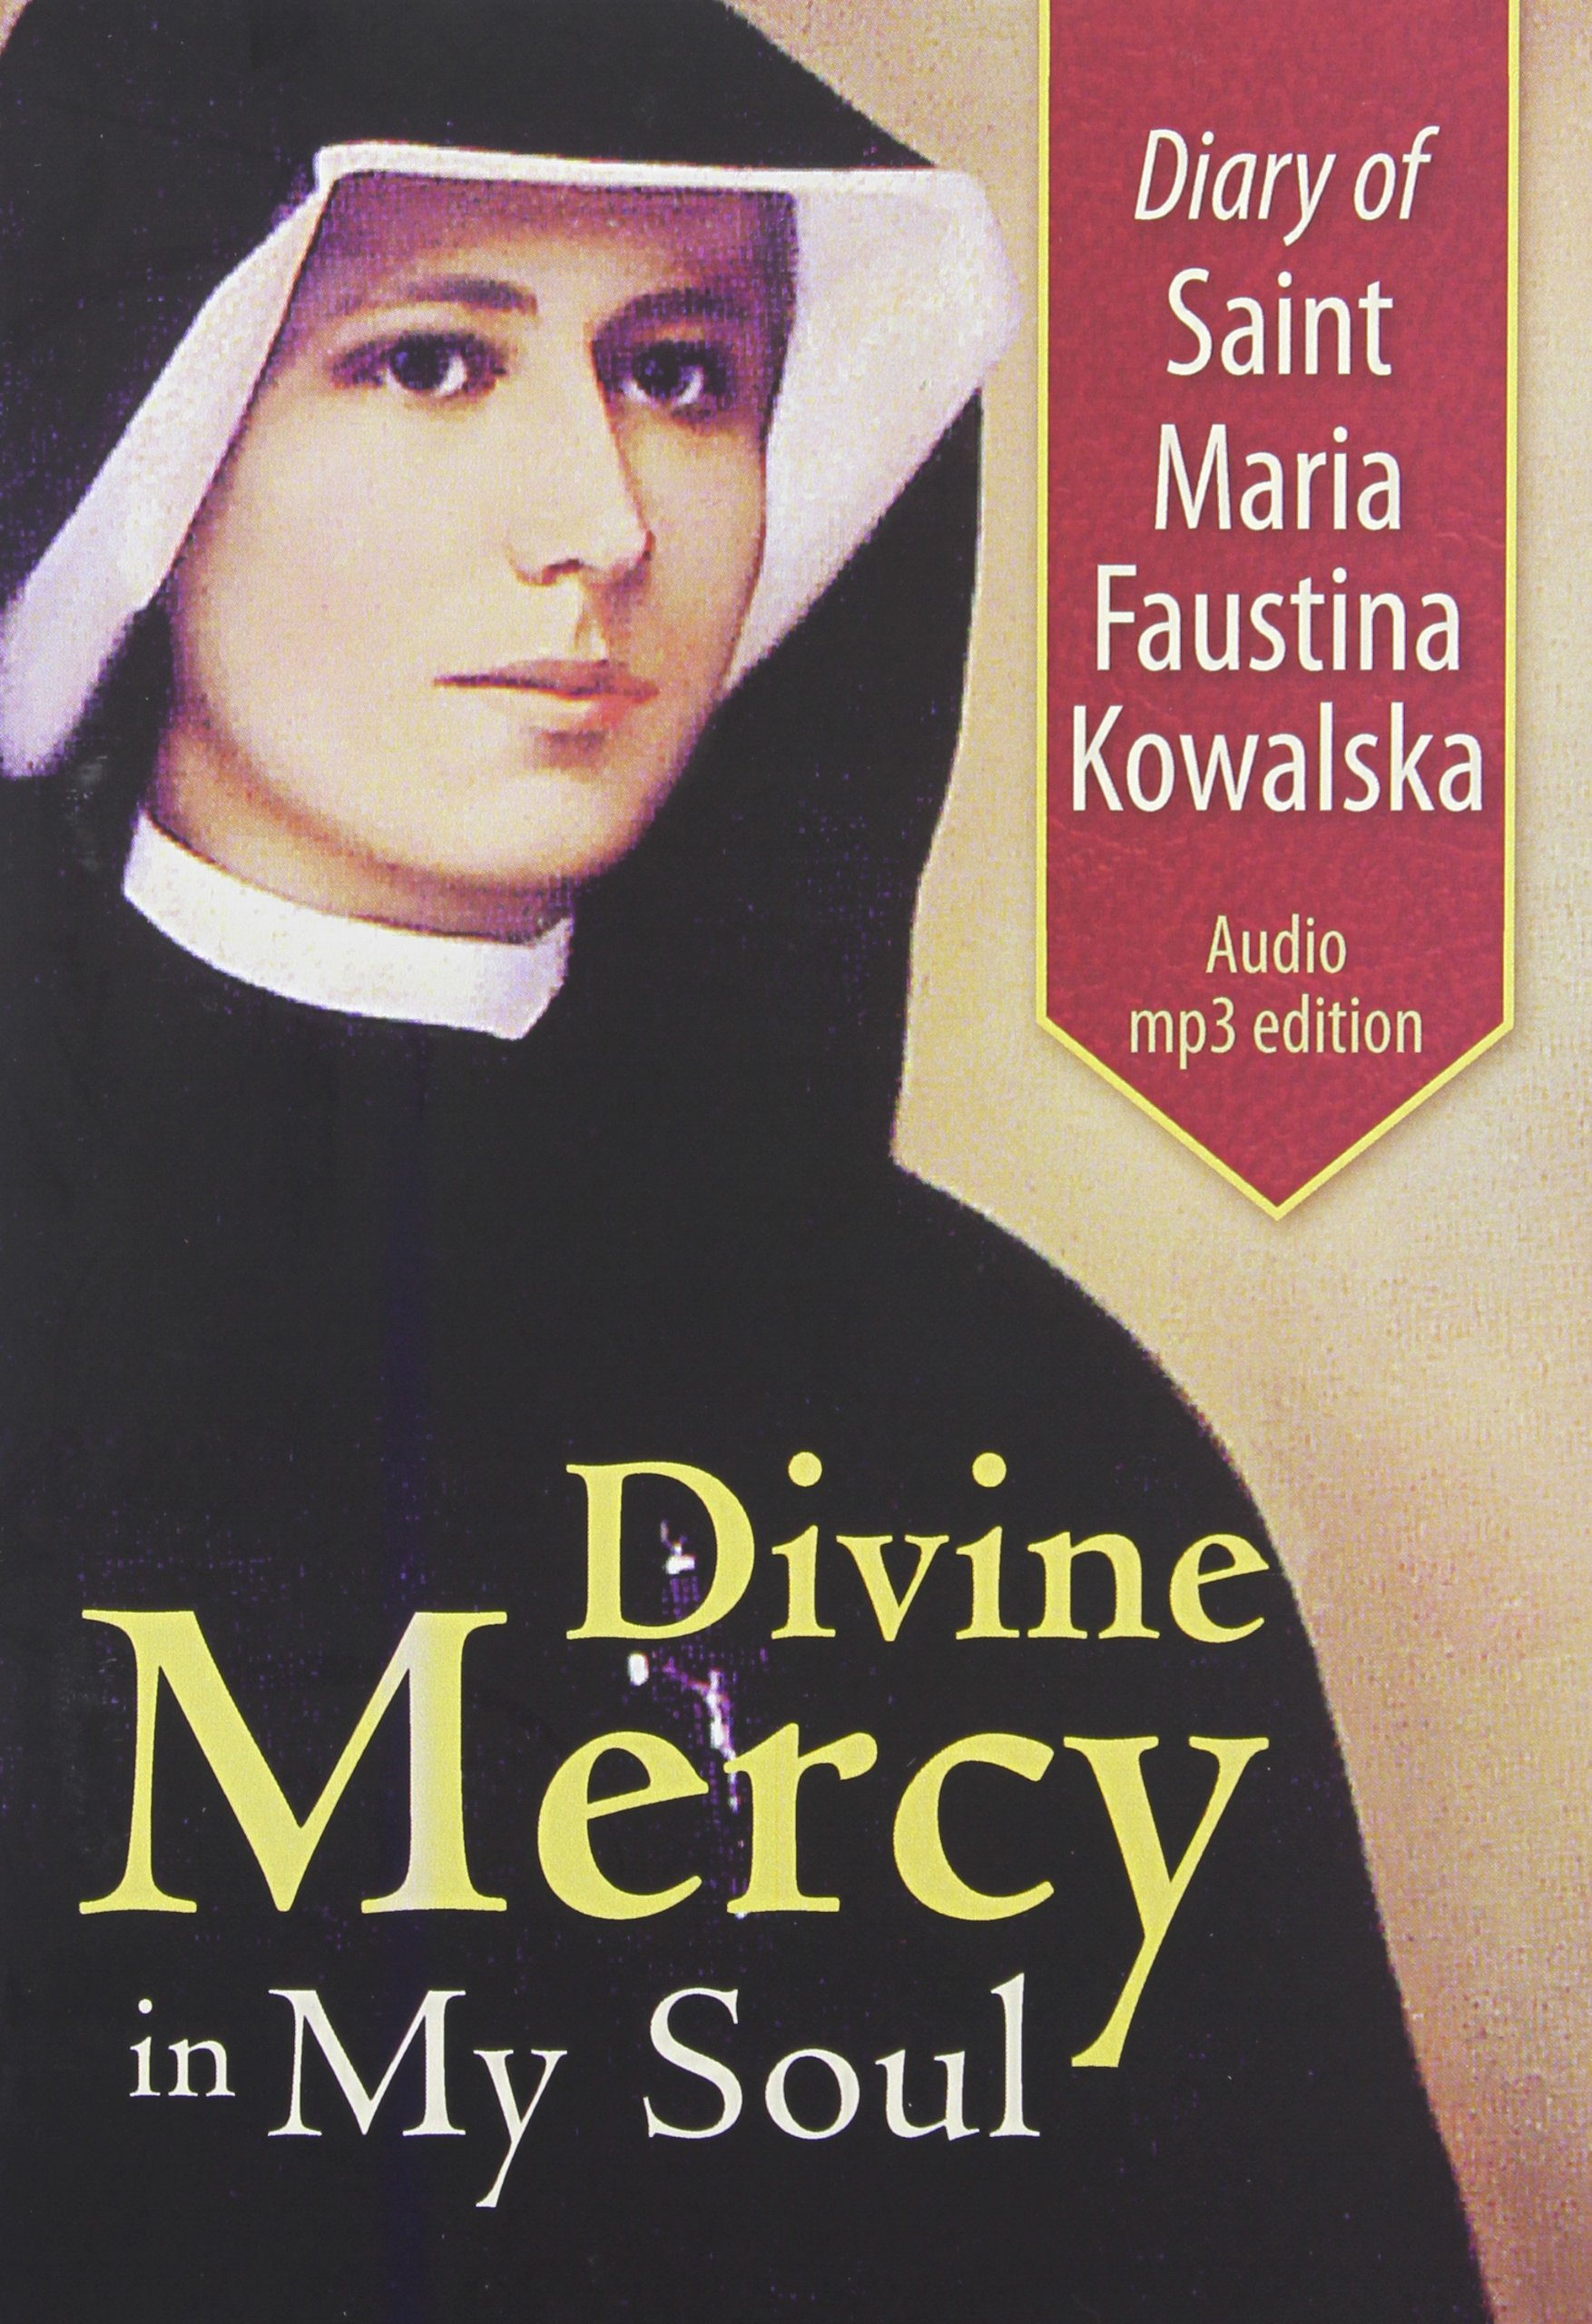 Read Online Diary of St. Maria Faustina Kowalska: Divine Mercy in My Soul PDF